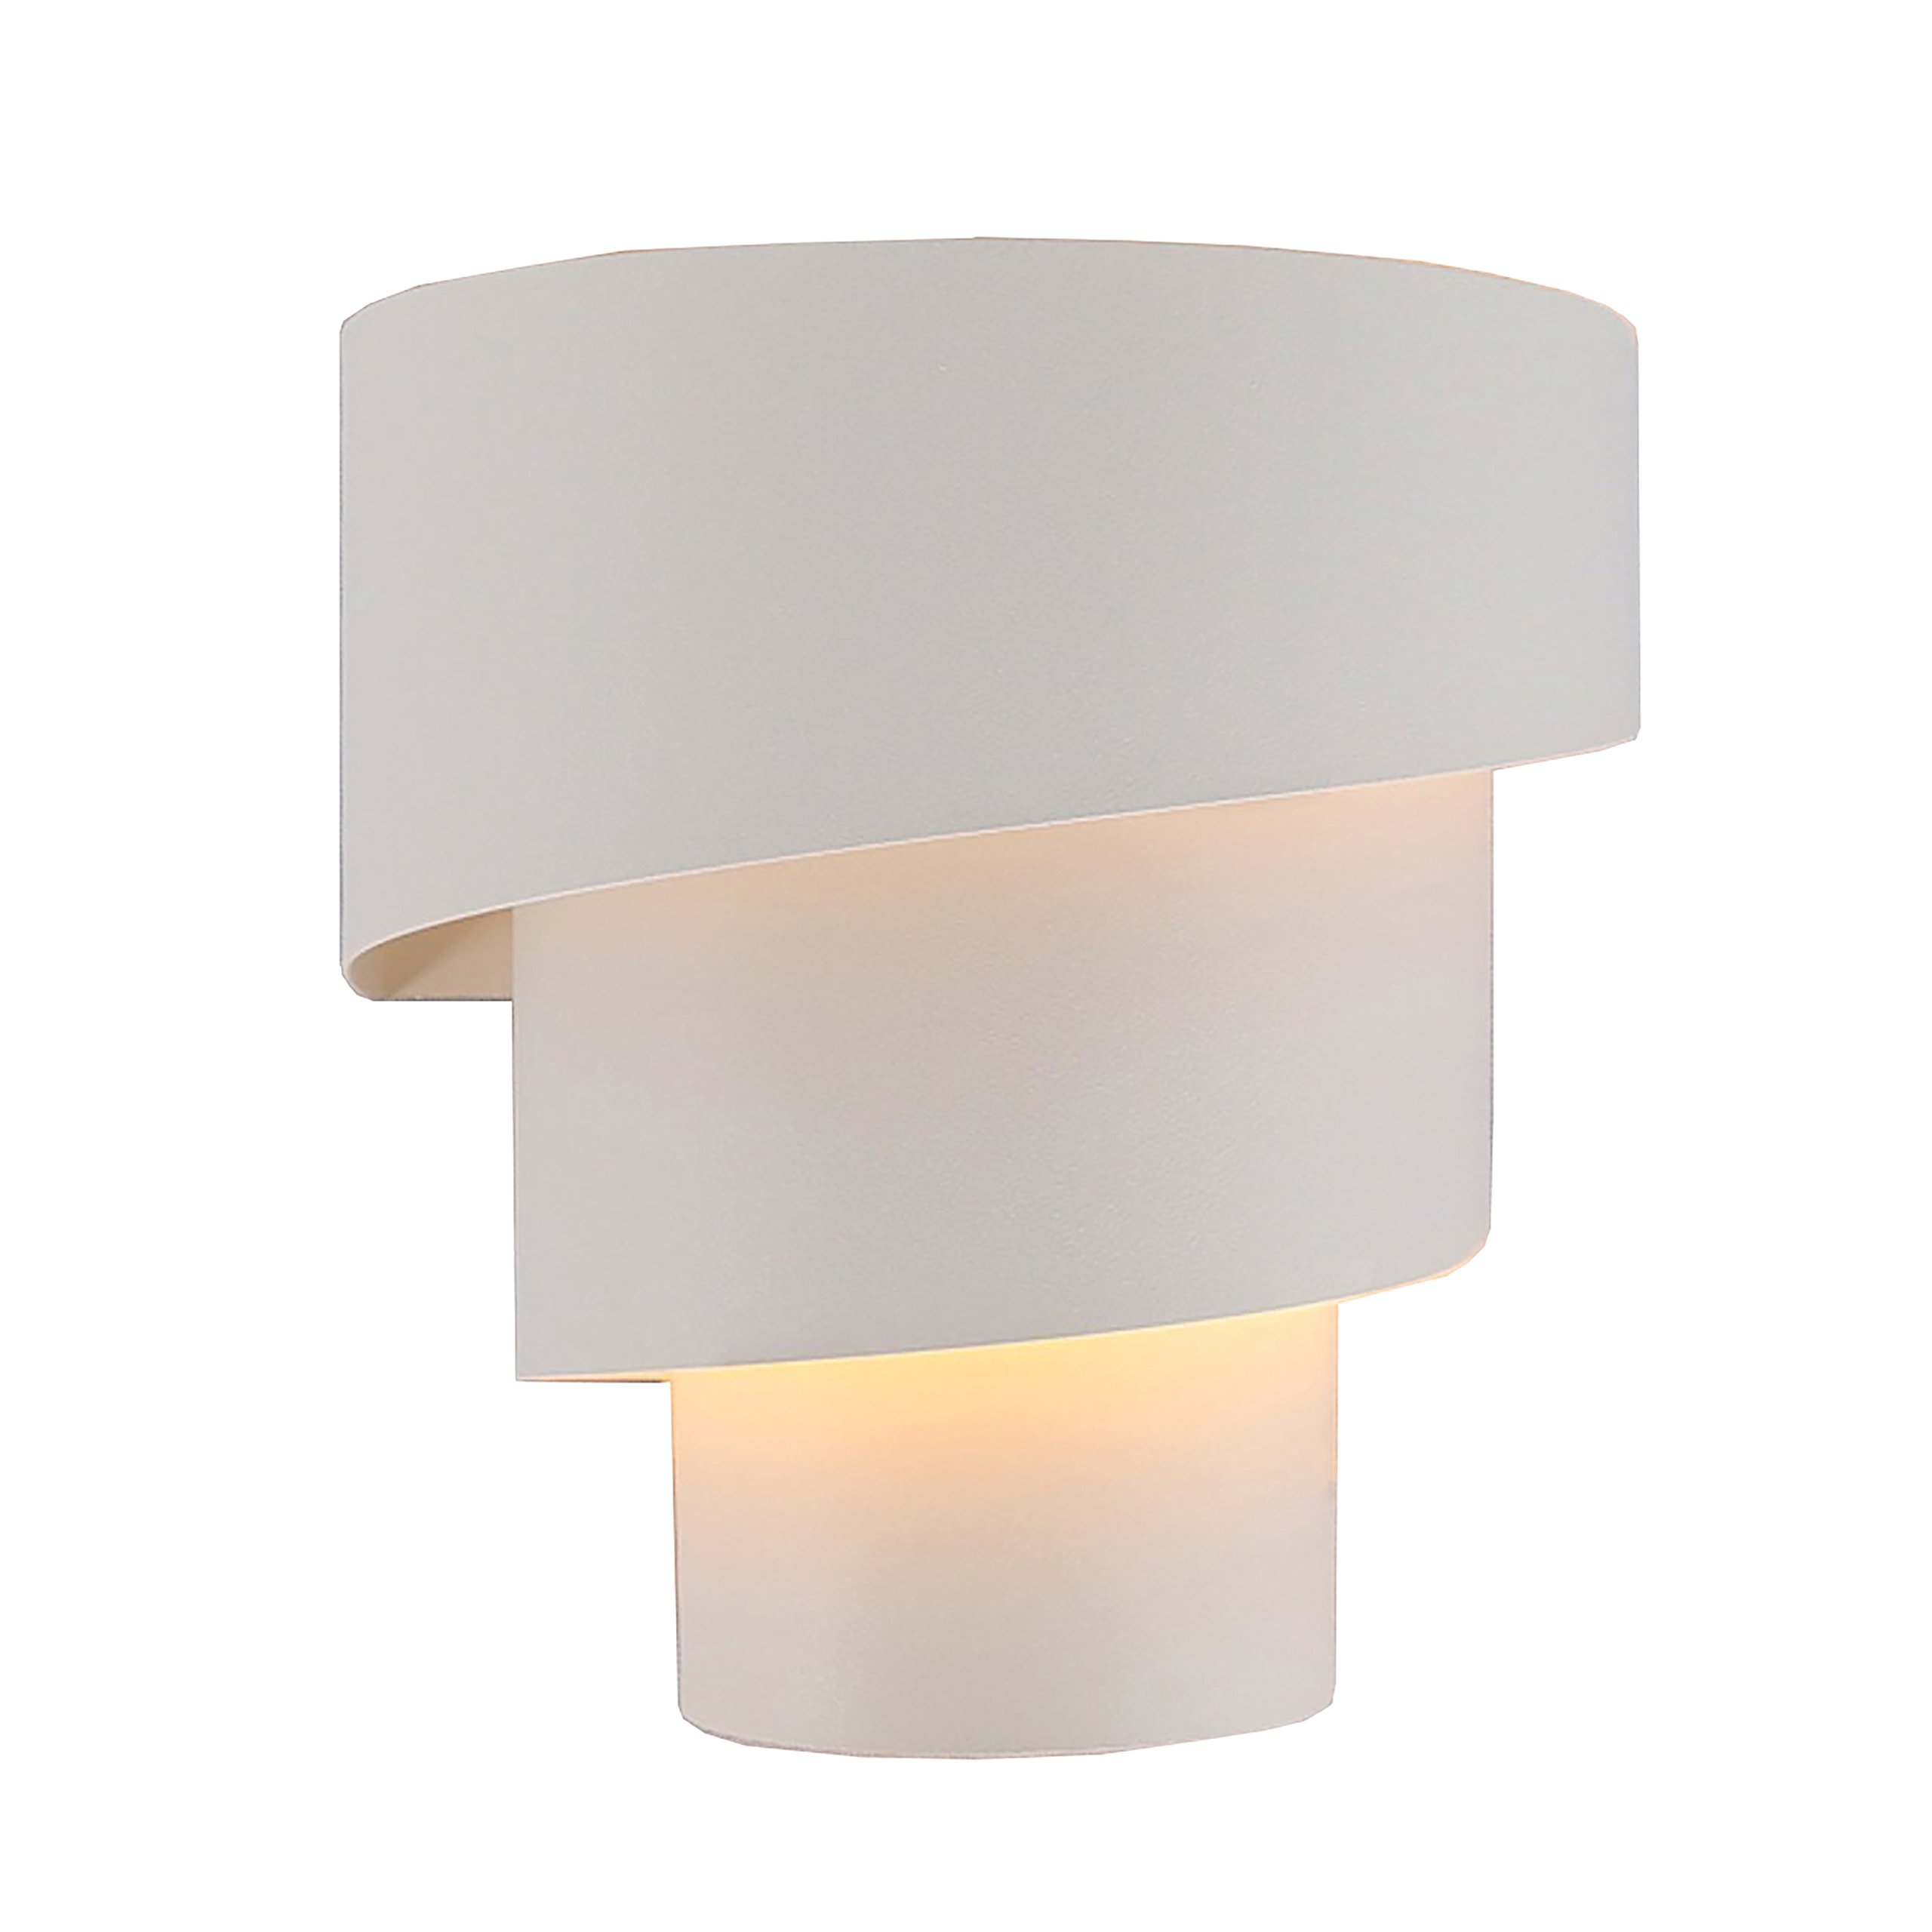 Lightess Wall Sconce Light LED Modern Wall Mounted Night Lighting up and Down Lamp for Bedroom Living Room Hallway Staircase (Large Size)